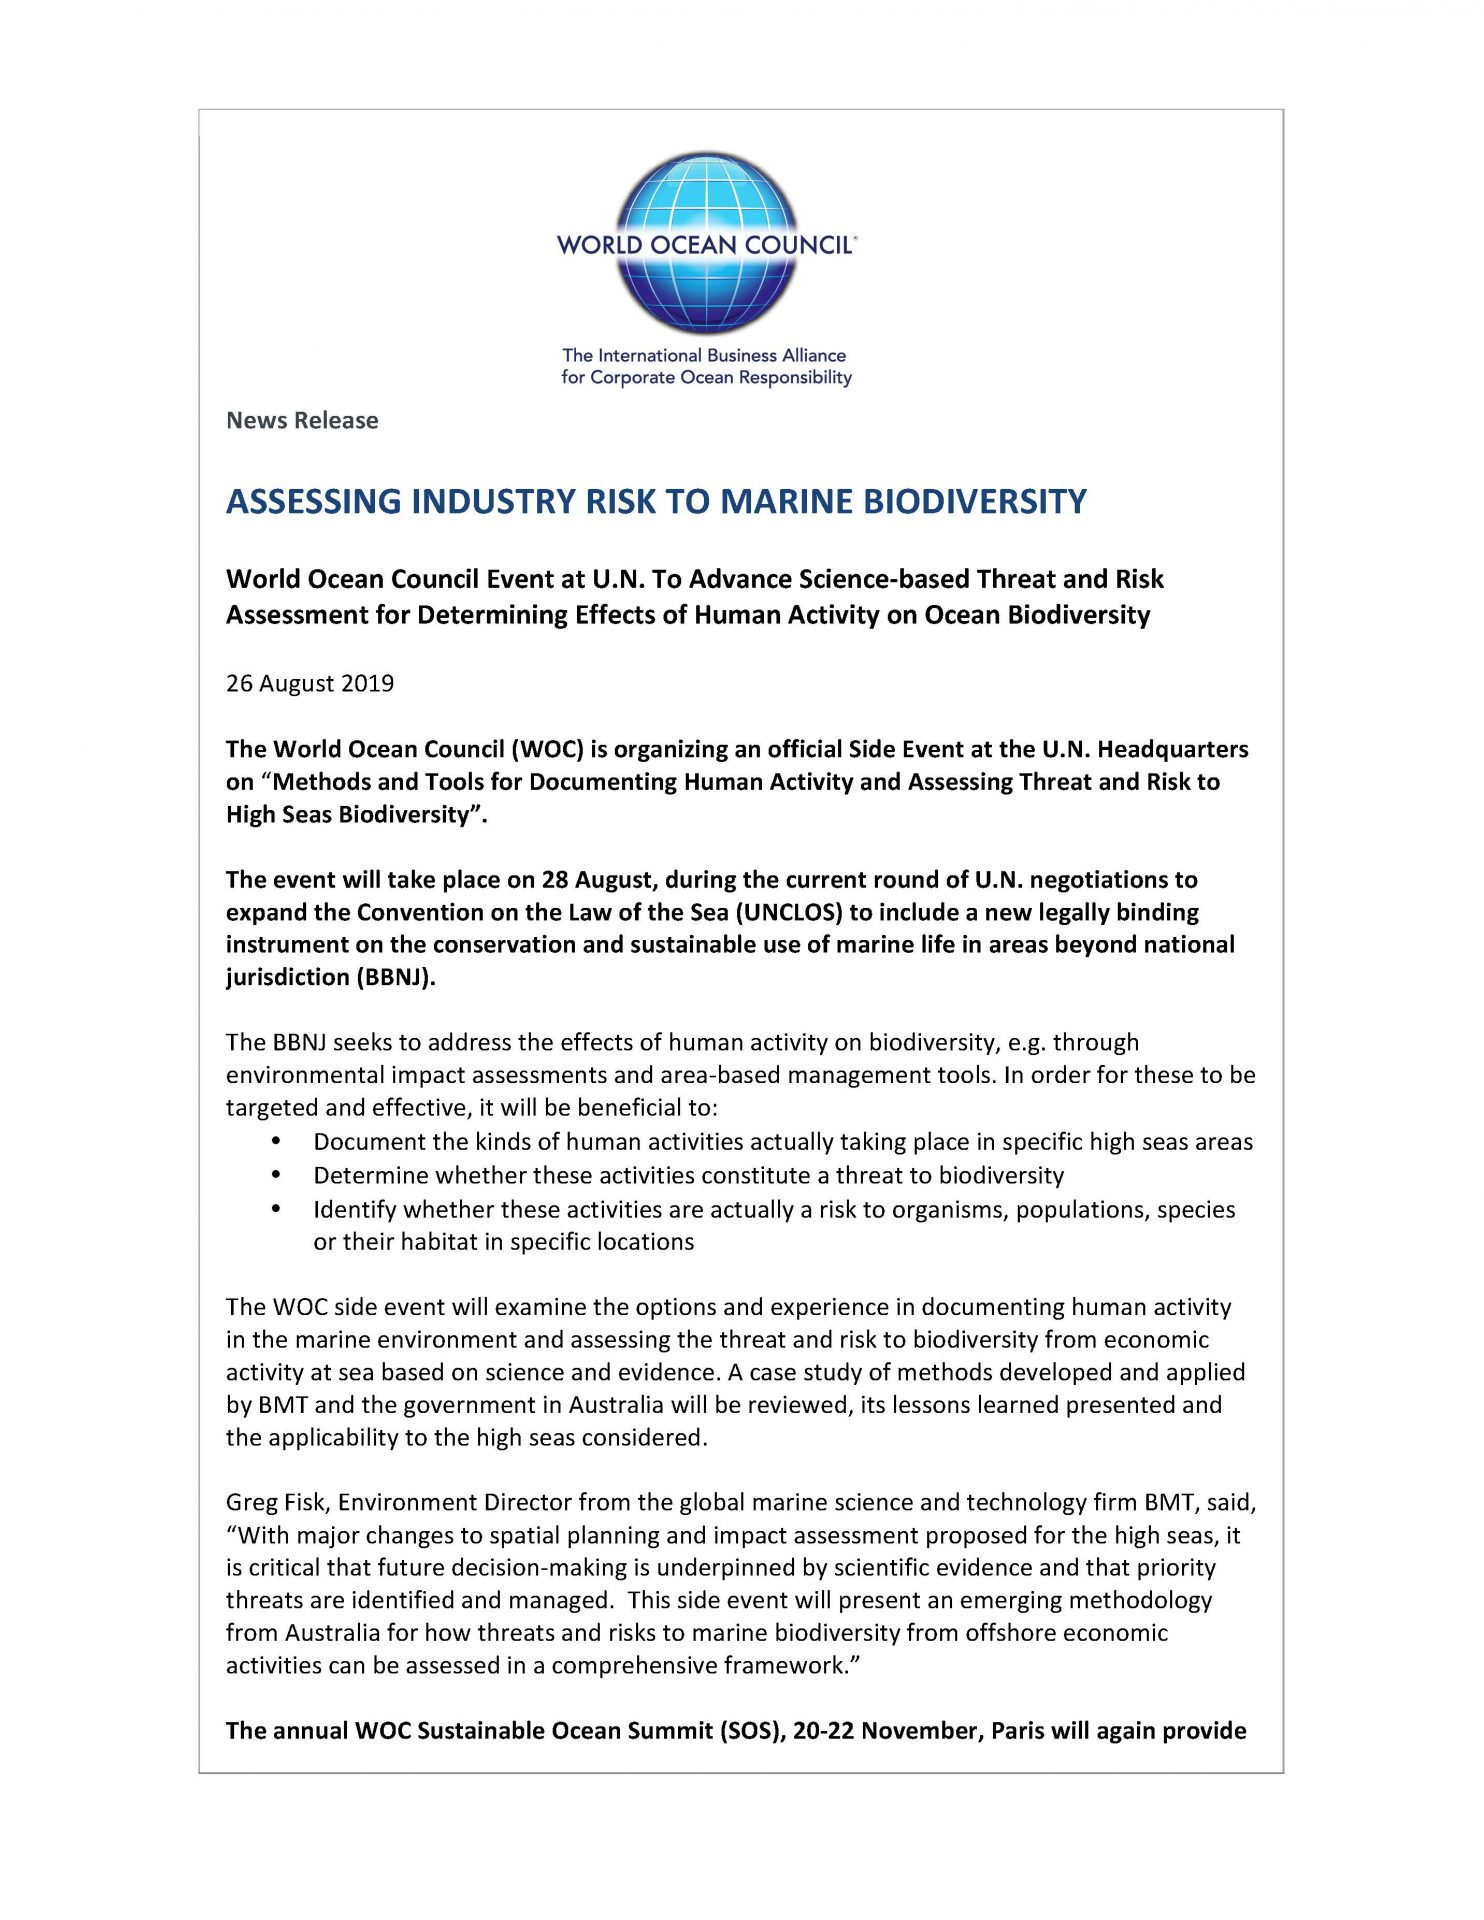 Assessing Industry Risk to Marine Biodiversity - 26 August 2019